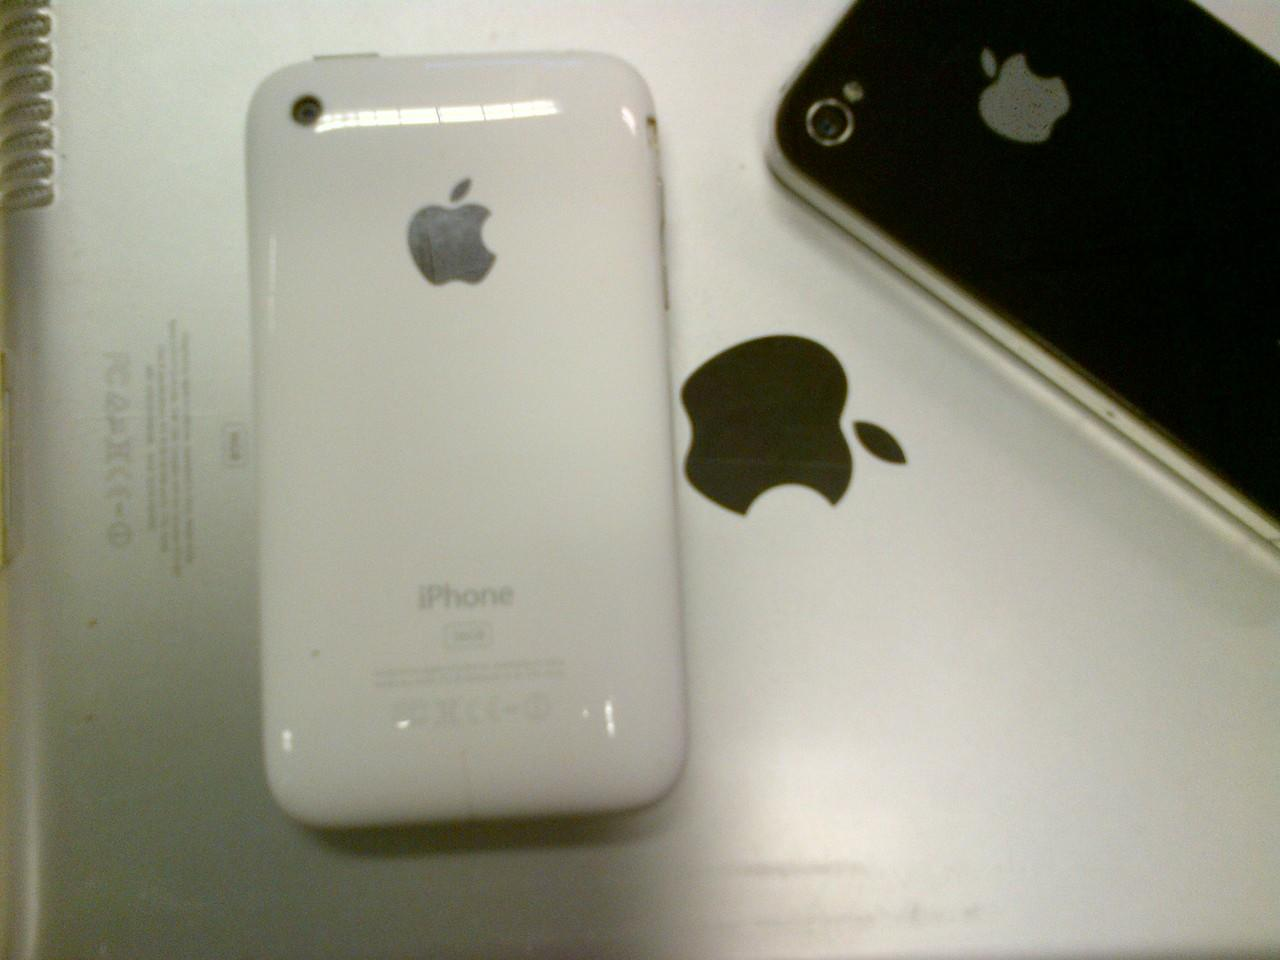 WTS Iphone 3G 16GB White